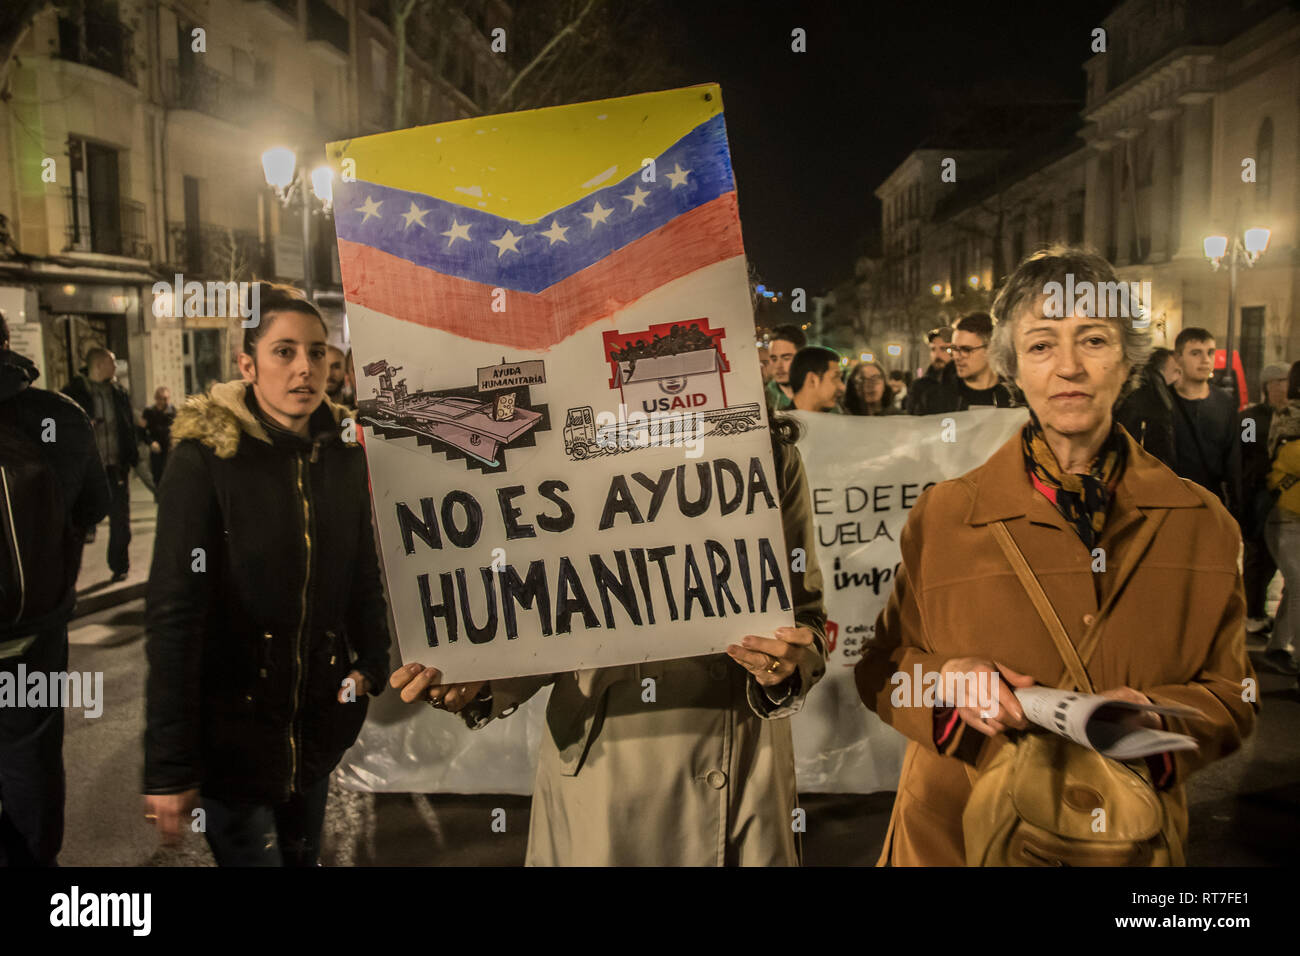 Madrid, Spain. 28th Feb, 2019. March against the military intervention of United States in Venezuela '¨No war intervention'¨in Madrid Spain. In the picture people witha big placard '¨ it is not humanitarian aid'¨ Credit: Alberto Sibaja Ramírez/Alamy Live News - Stock Image